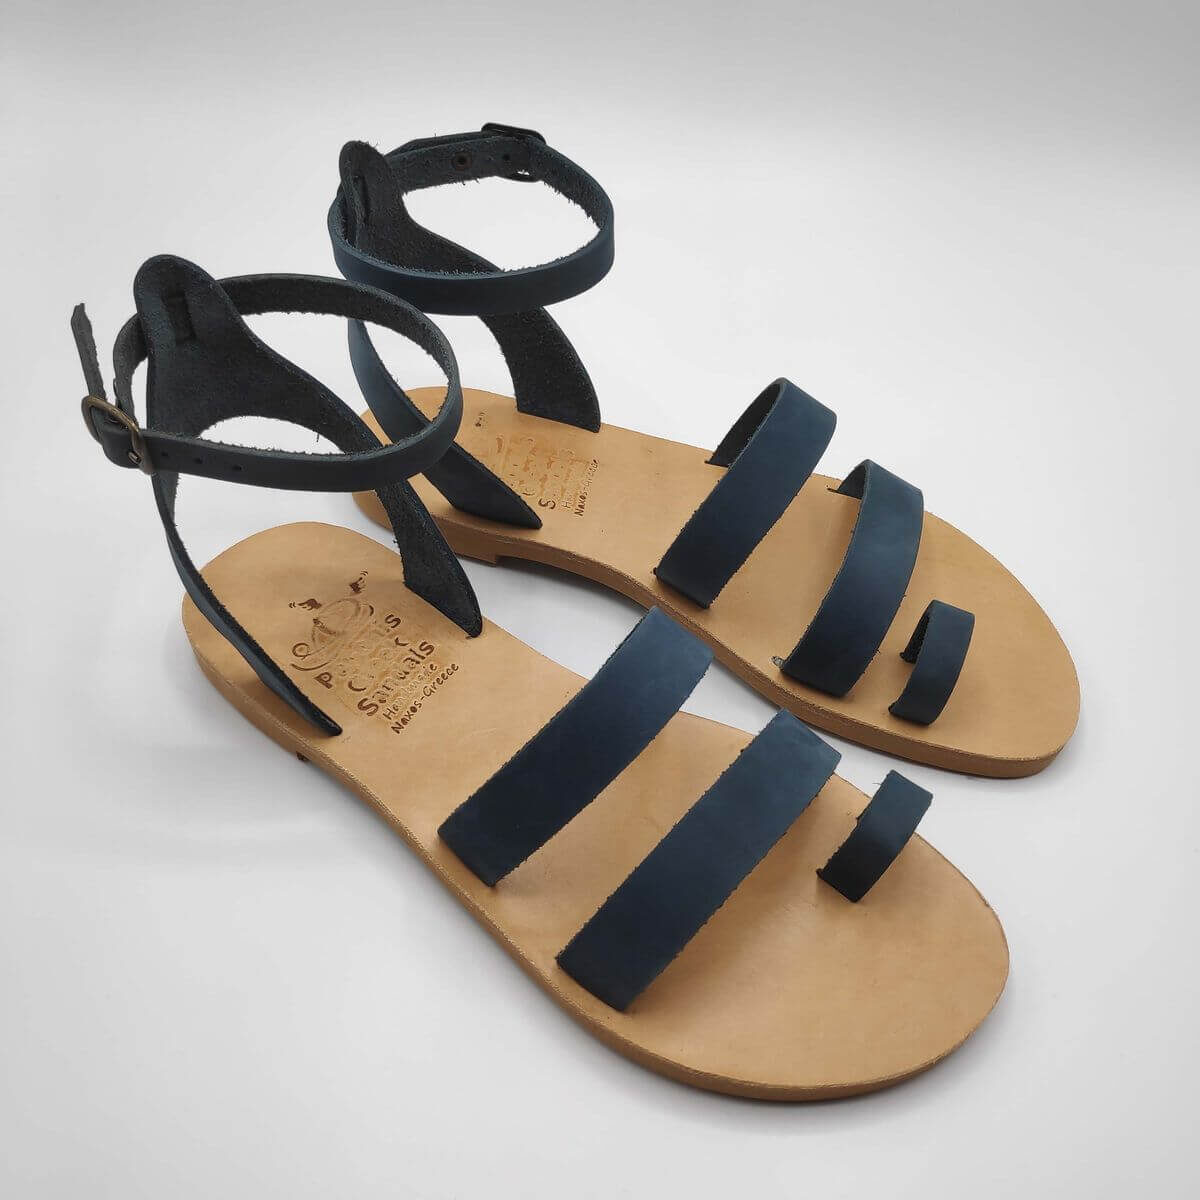 blue nubuck leather dressy sandals with two straps, toe ring and high ankle strap, side view